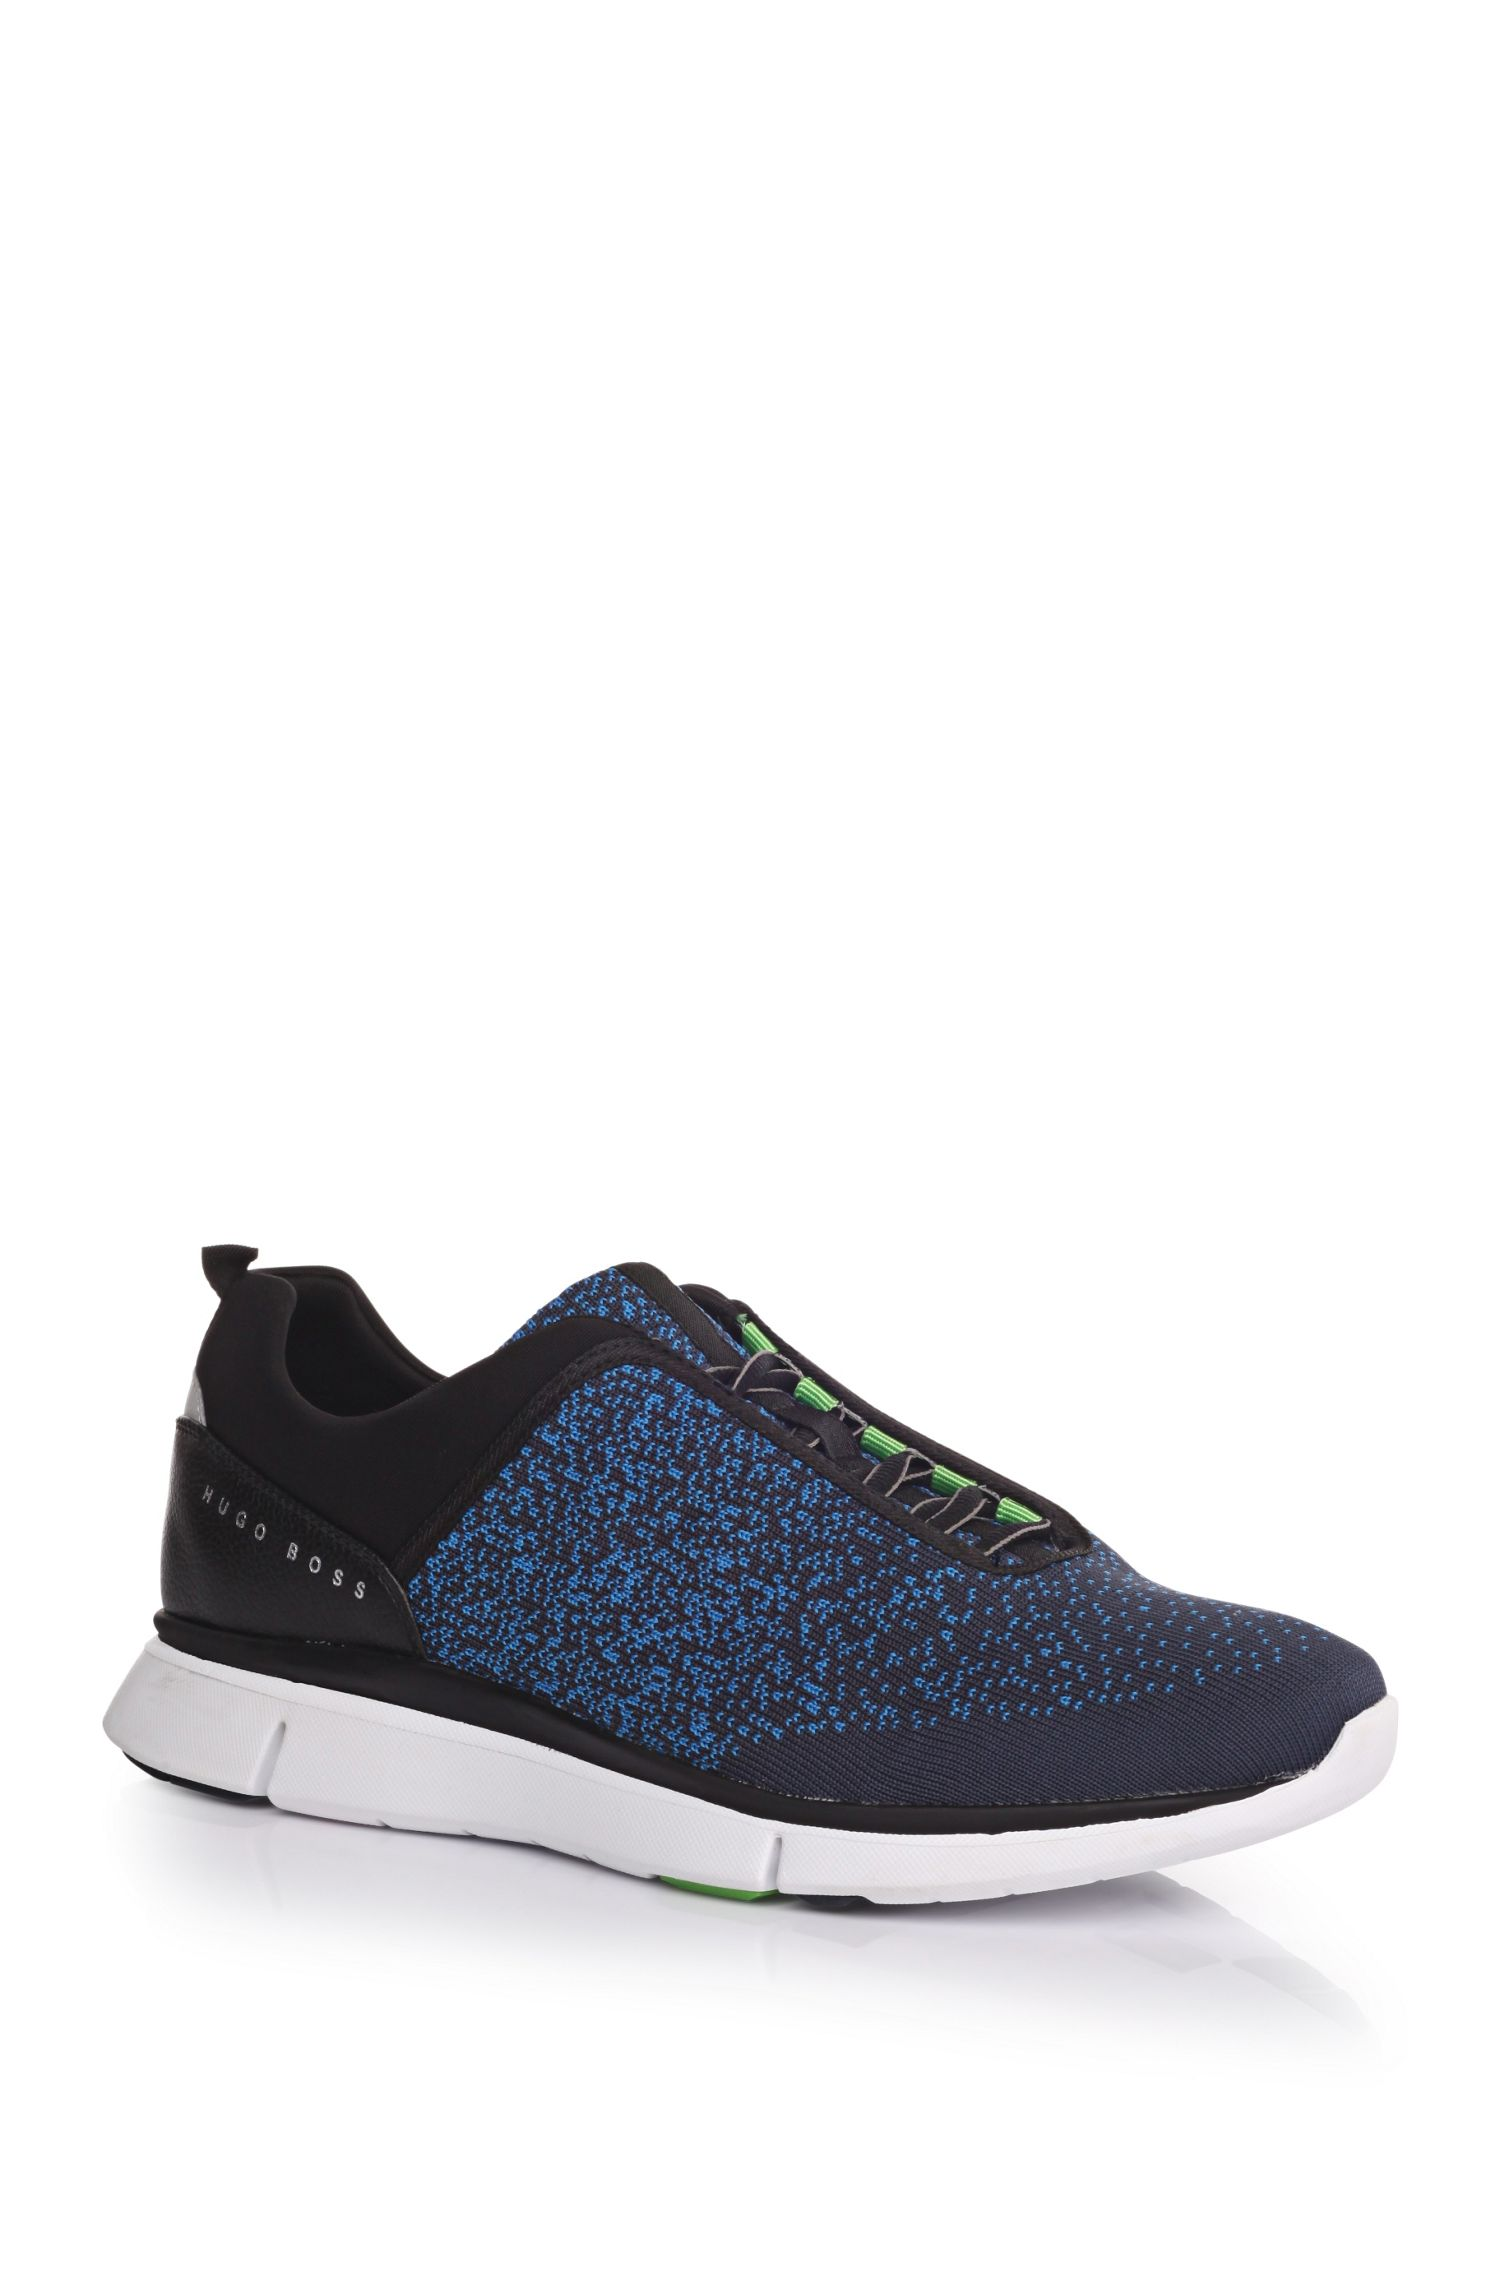 'Gym Knit' | Jersey Upper Sneakers